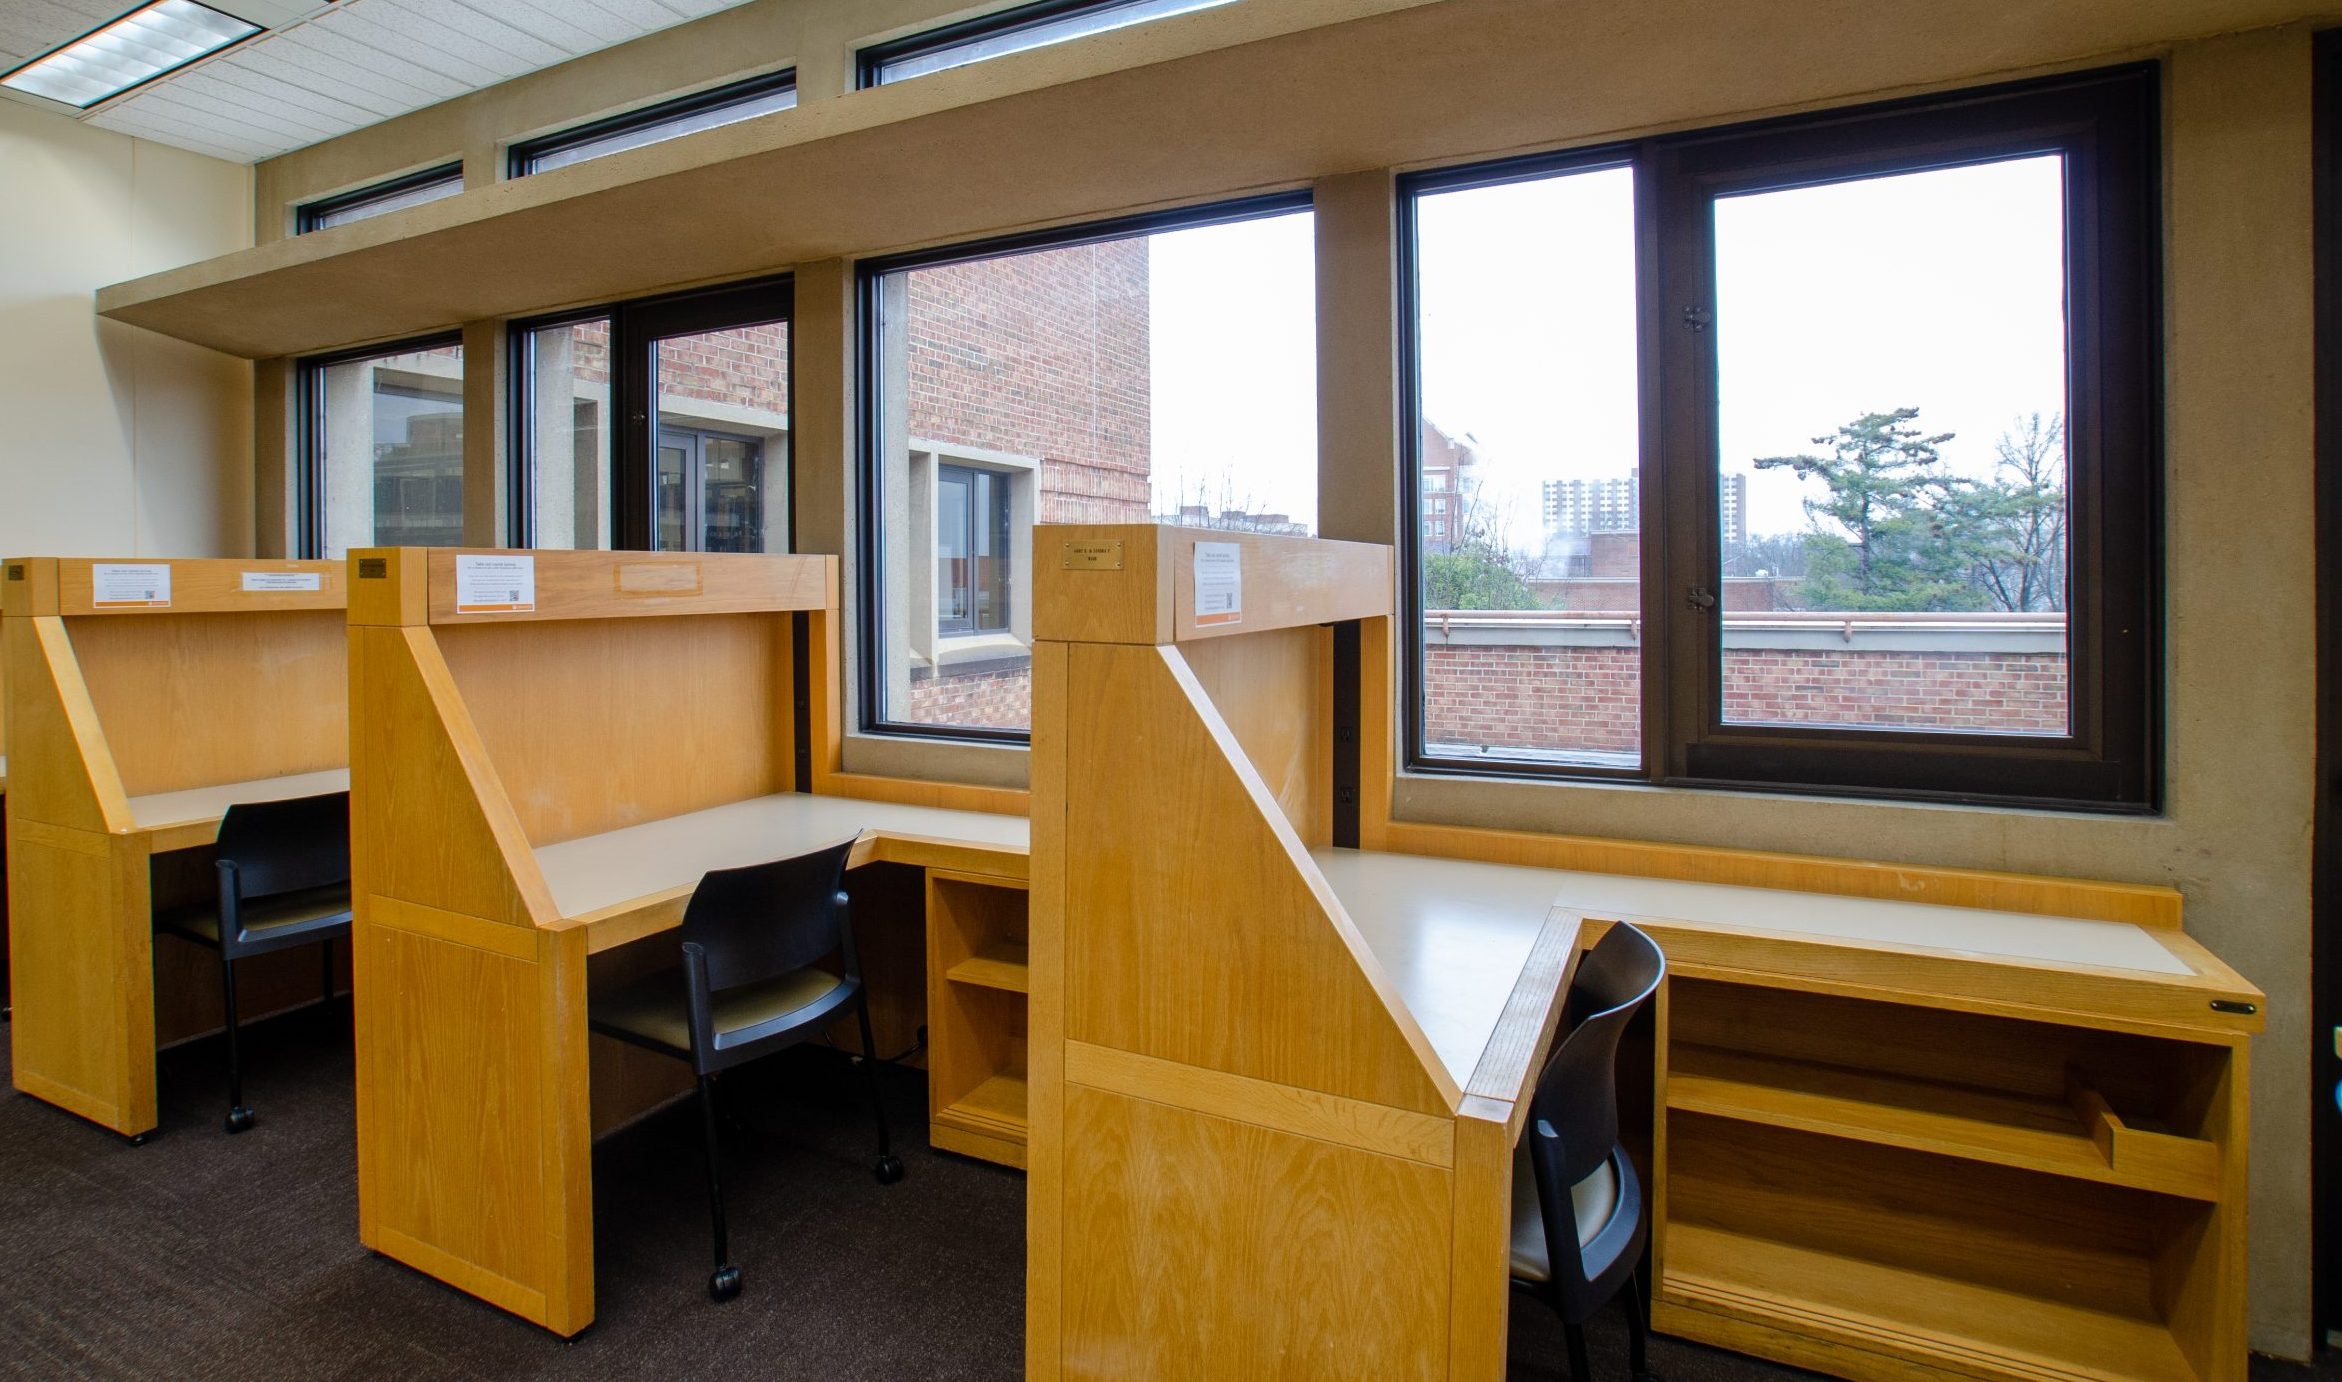 grad honors and scholars carrels in hodges library at ut knoxville